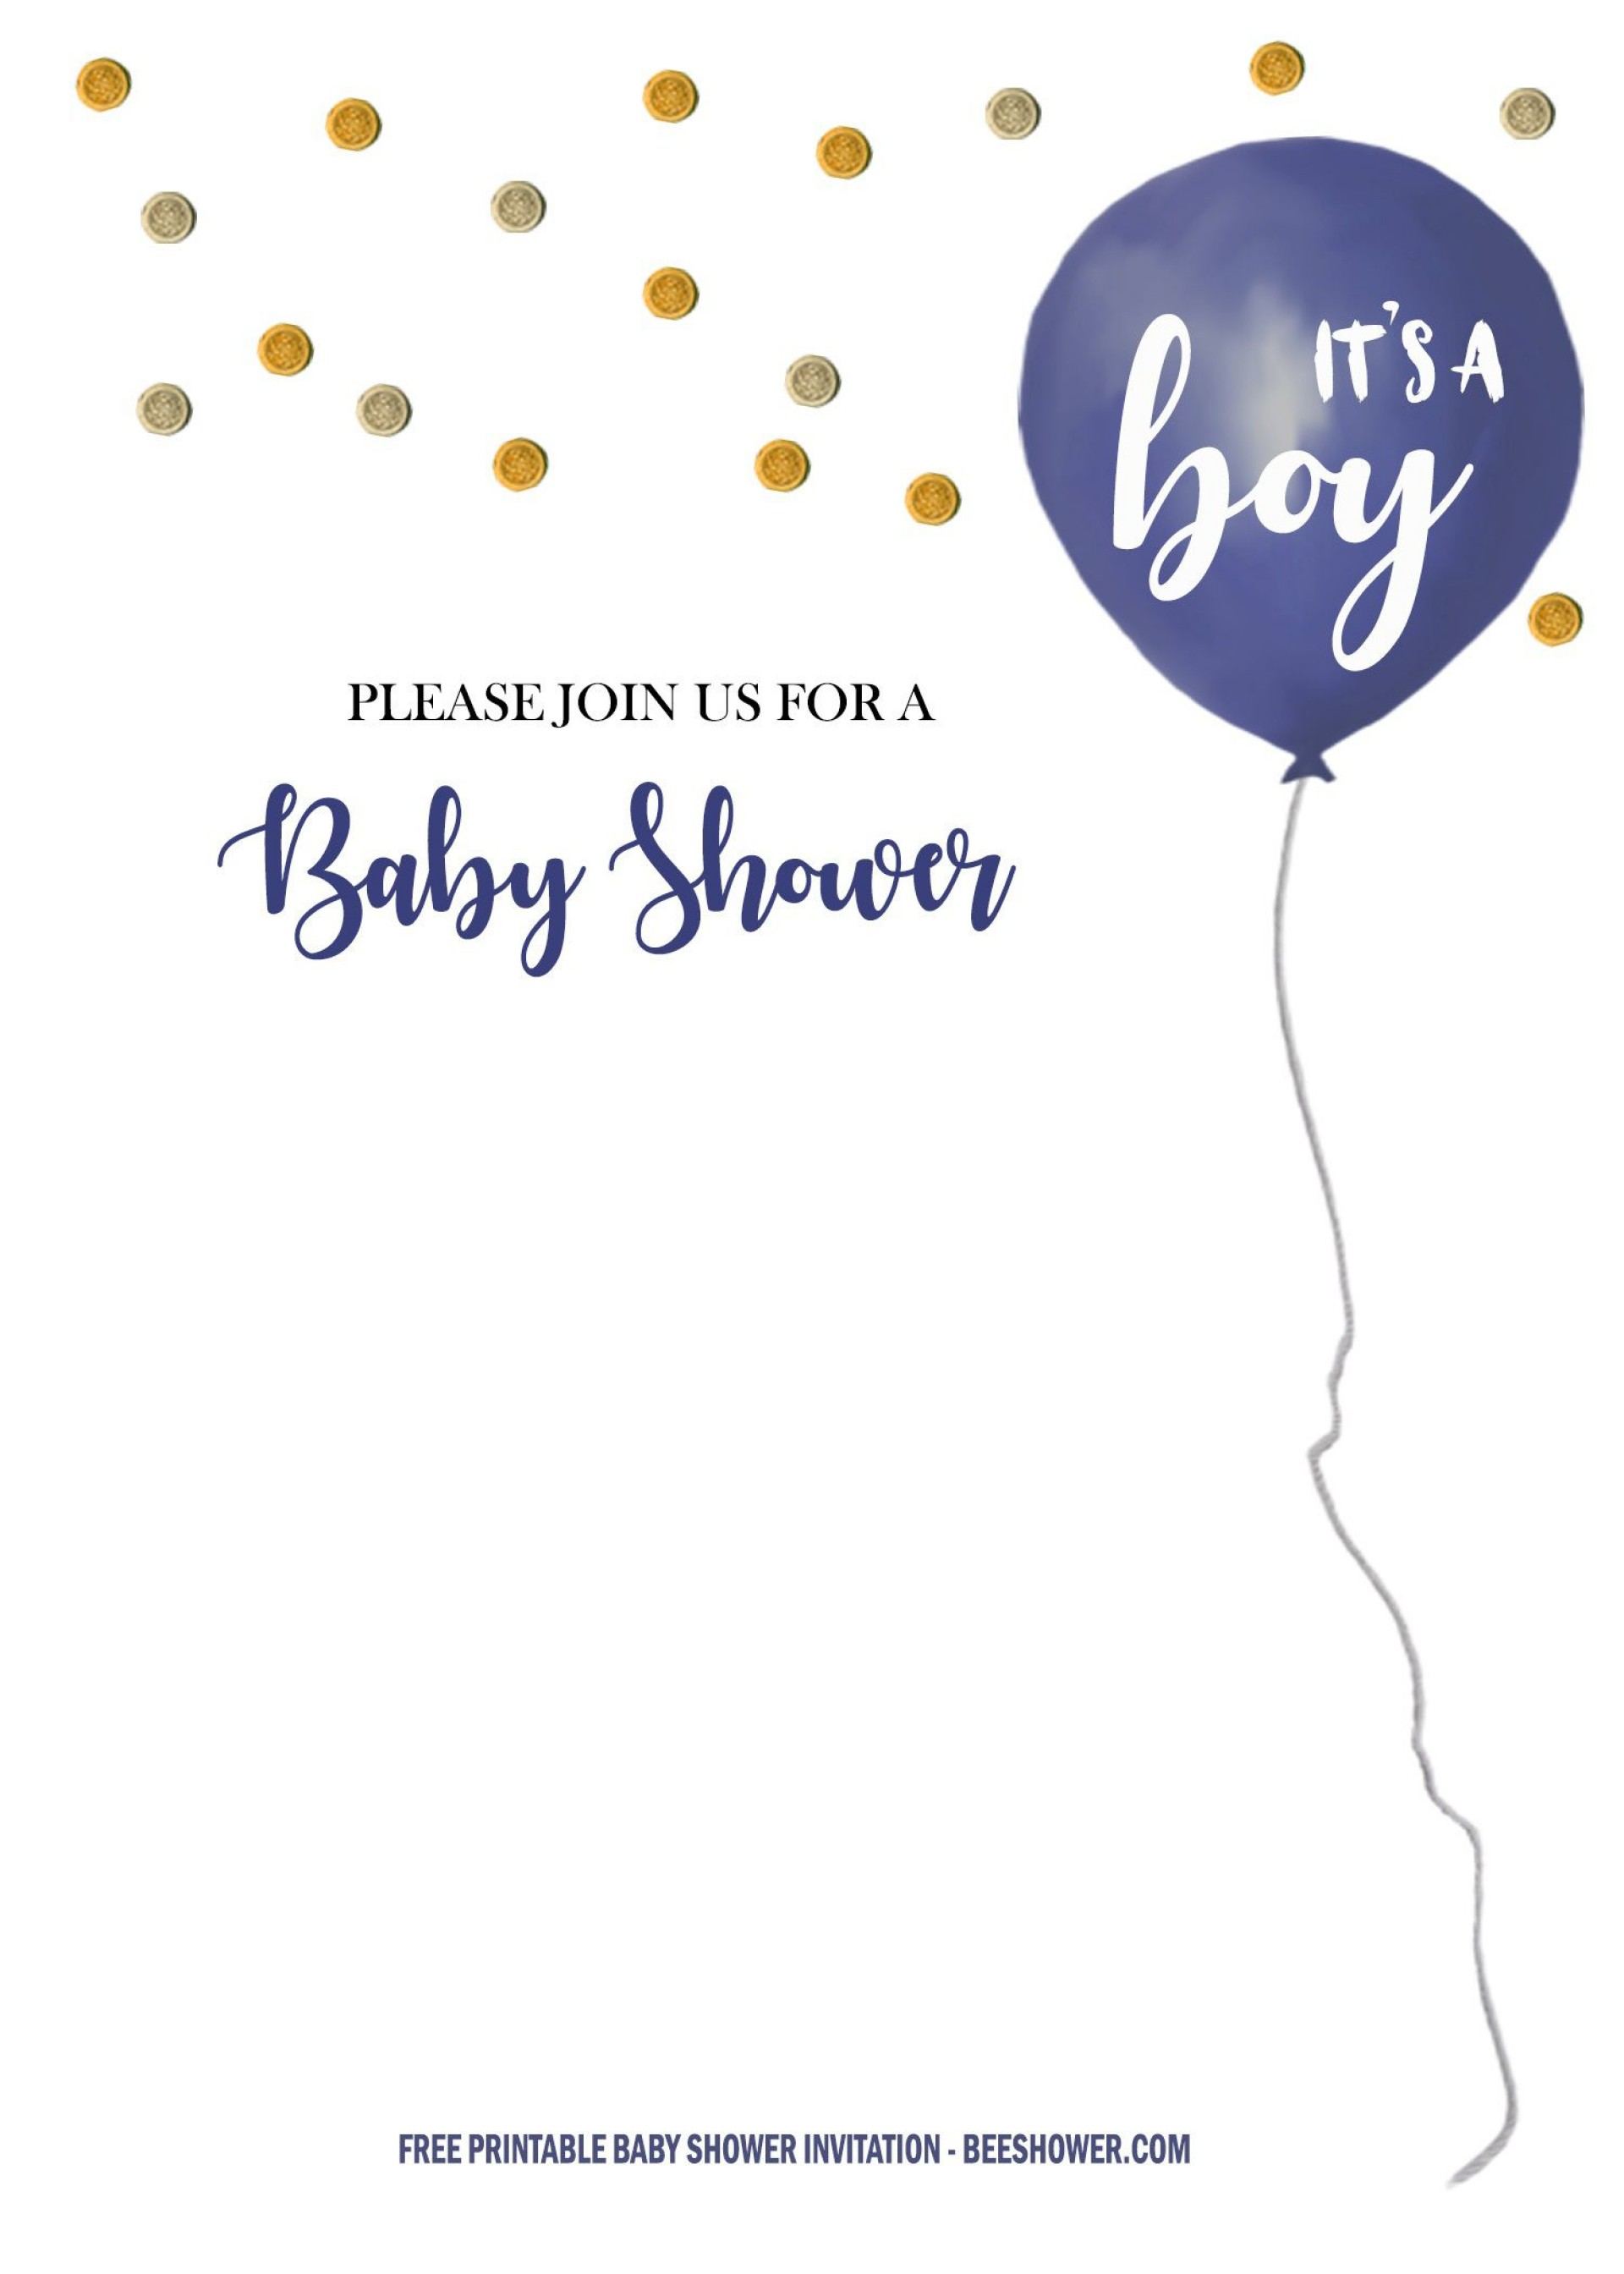 007 Beautiful Baby Shower Invitation Free Template Inspiration  Templates Online Printable E-invitation Card Design Download1920